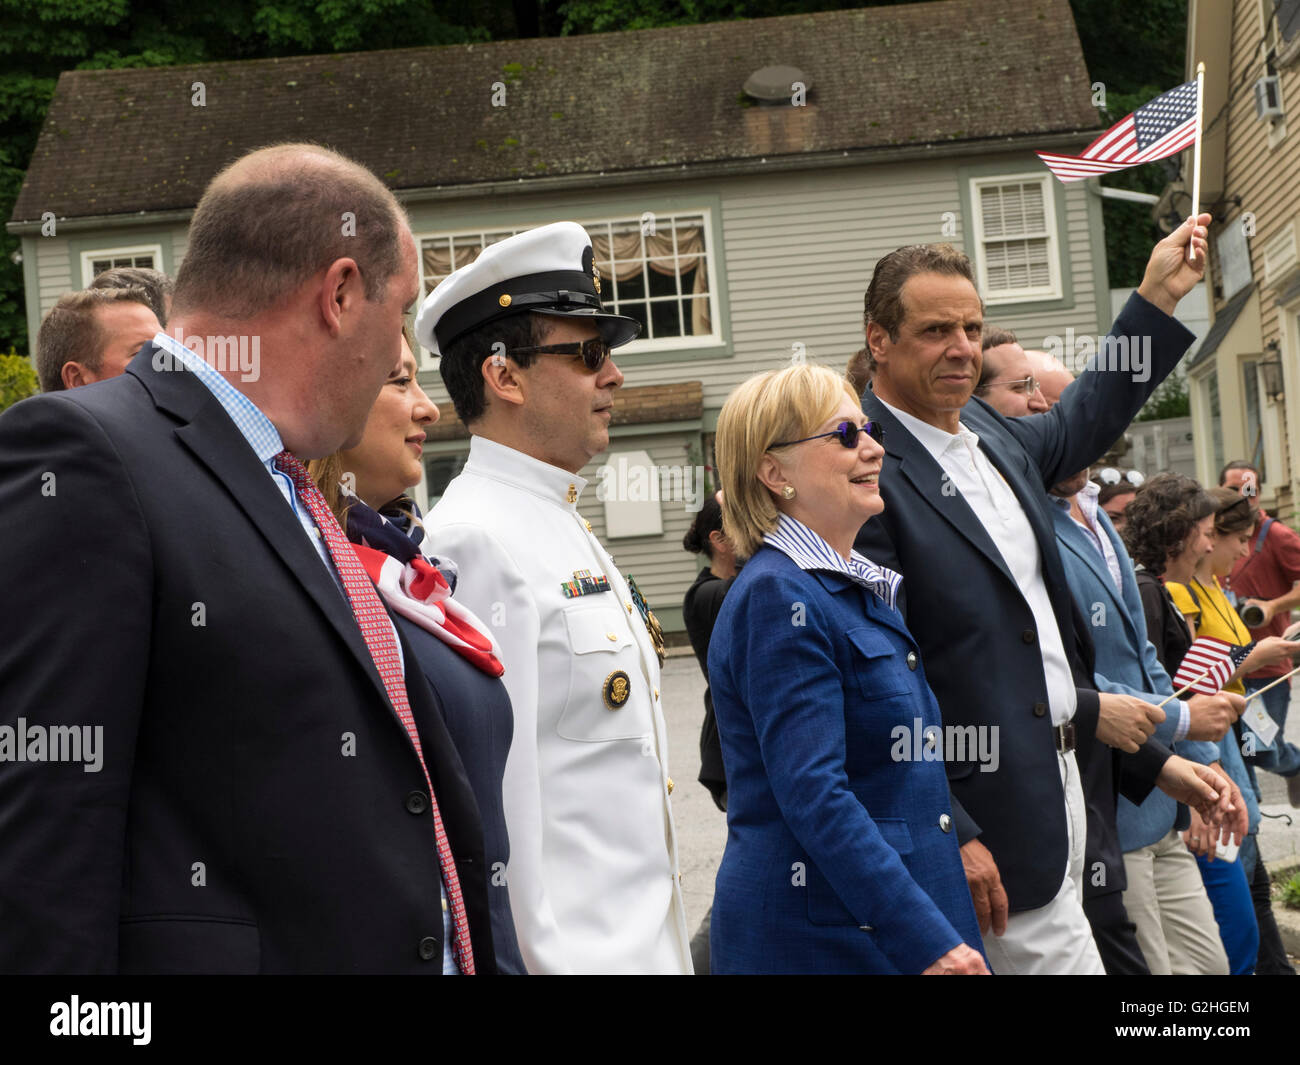 New York, USA. 30th May, 2016. US presidential candidate Secretary Hillary Clinton marches in her hometown Memorial - Stock Image